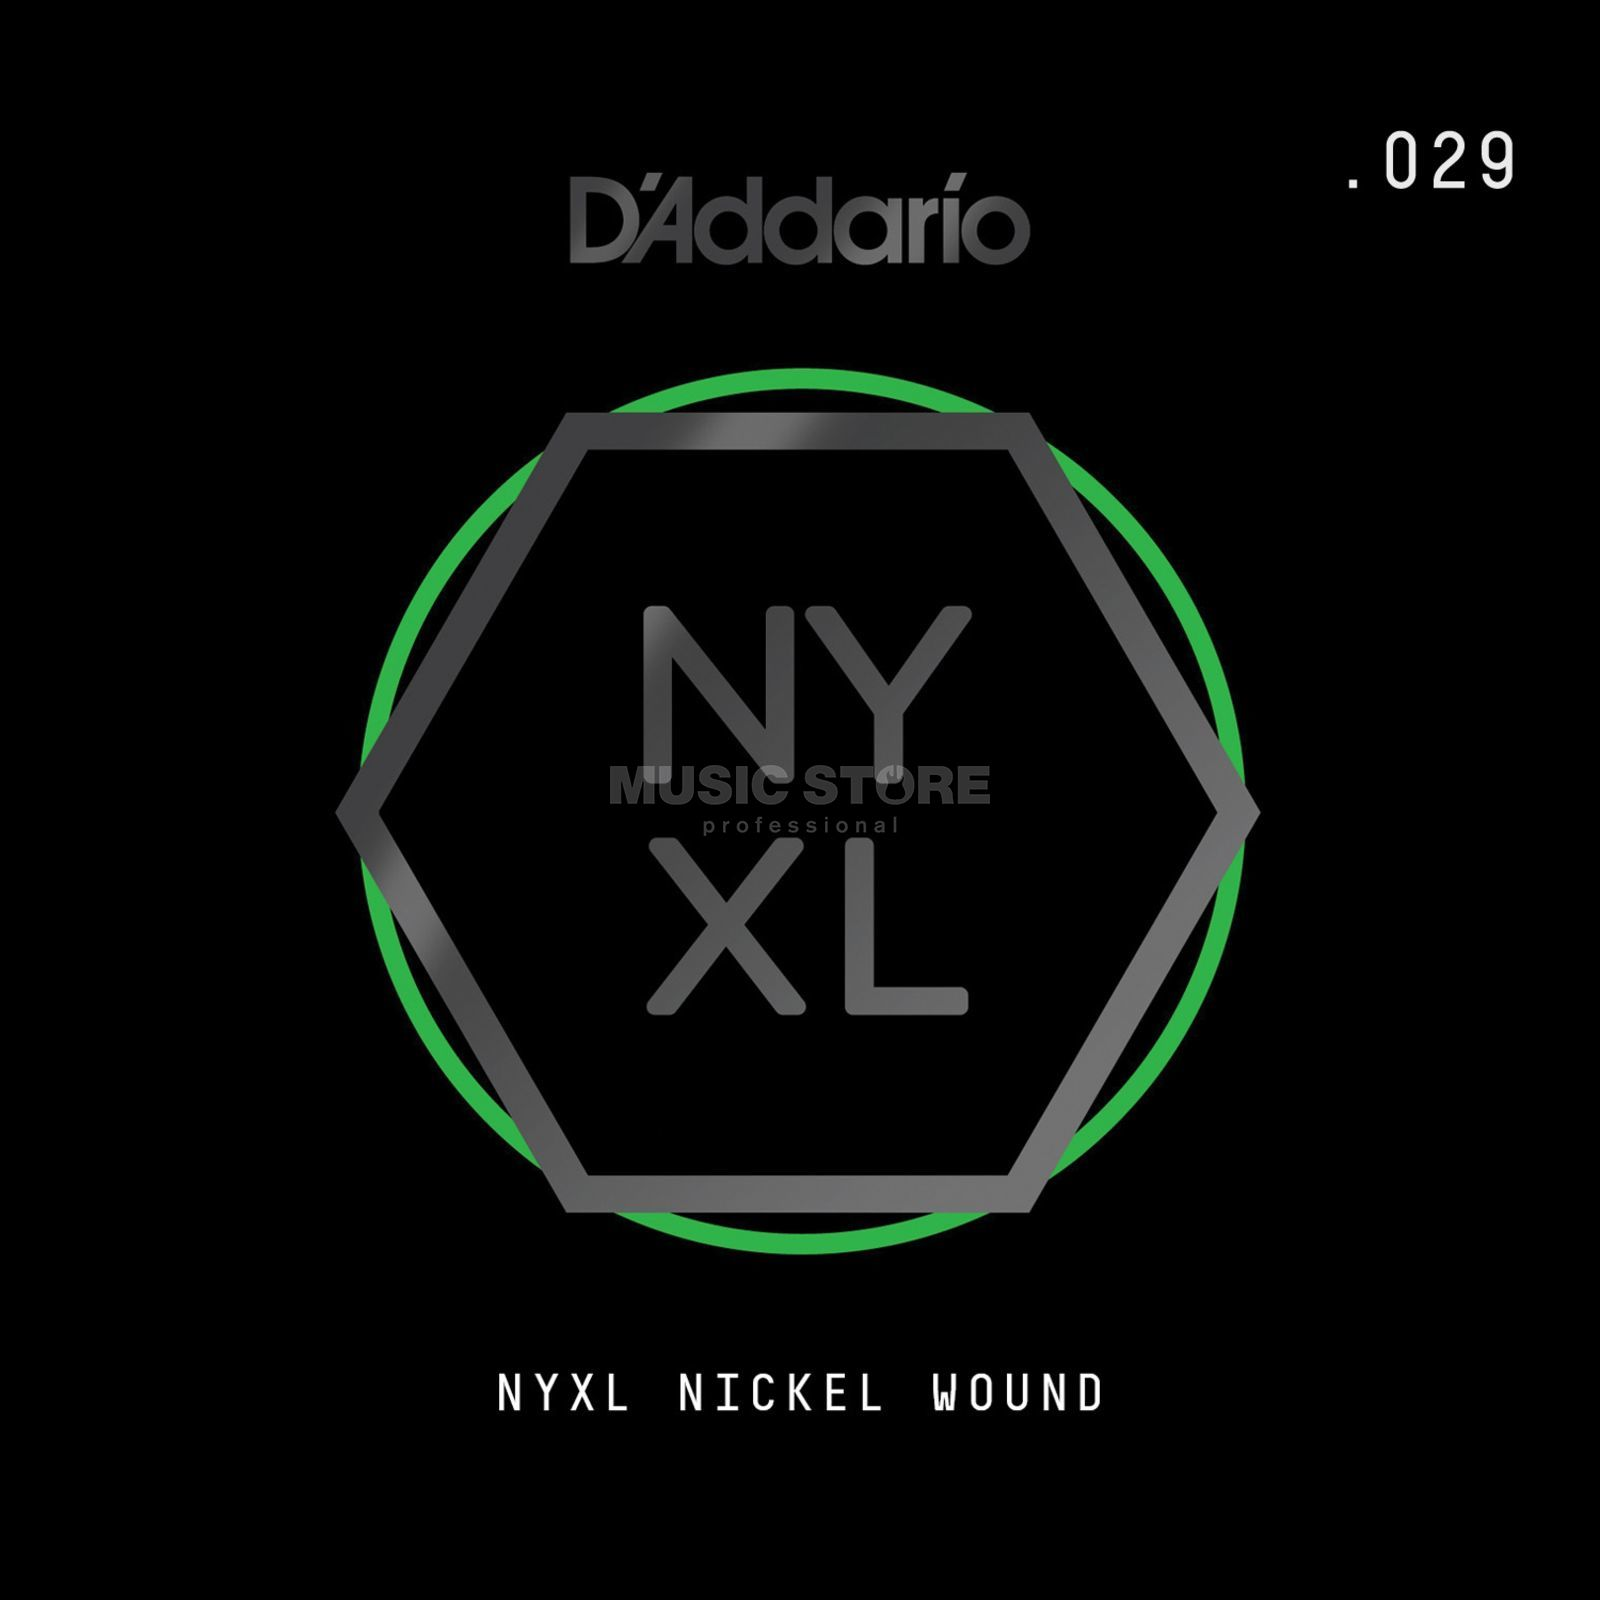 D'Addario NYNW029 Single String Nickel Wound Product Image